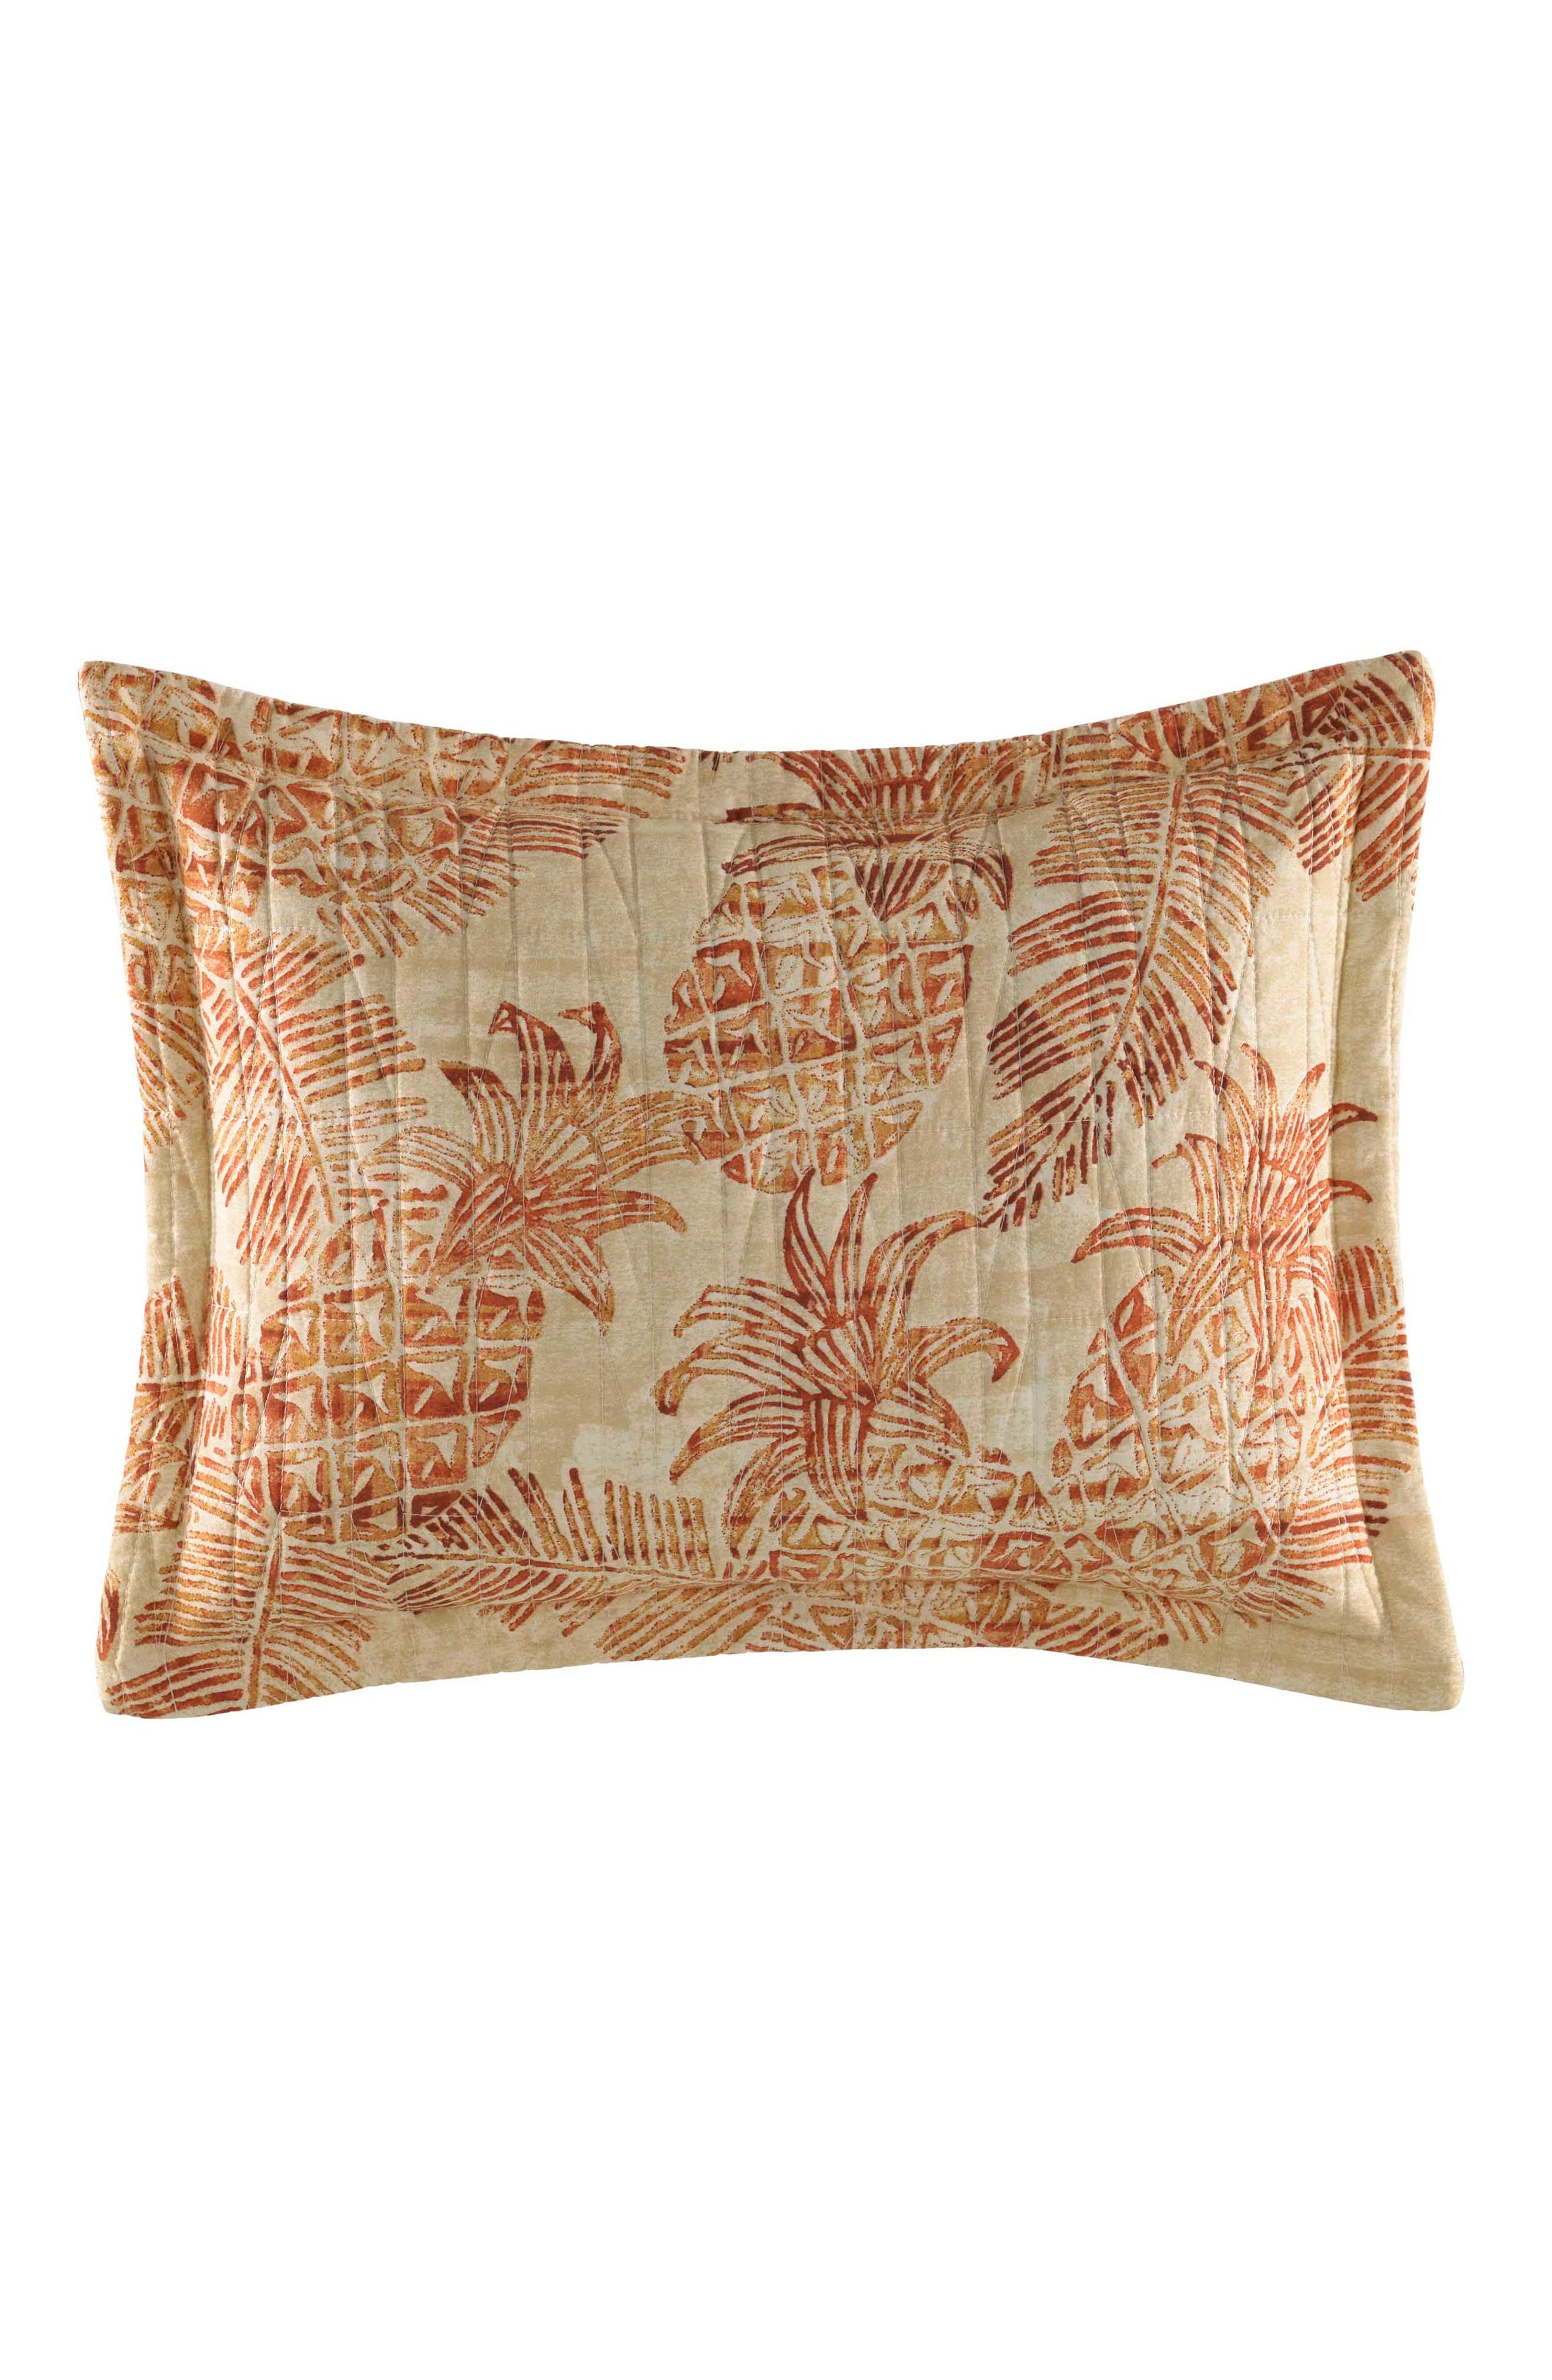 TOMMY BAHAMA,                             Batik Pineapple Quilted Accent Pillow,                             Main thumbnail 1, color,                             CORAL